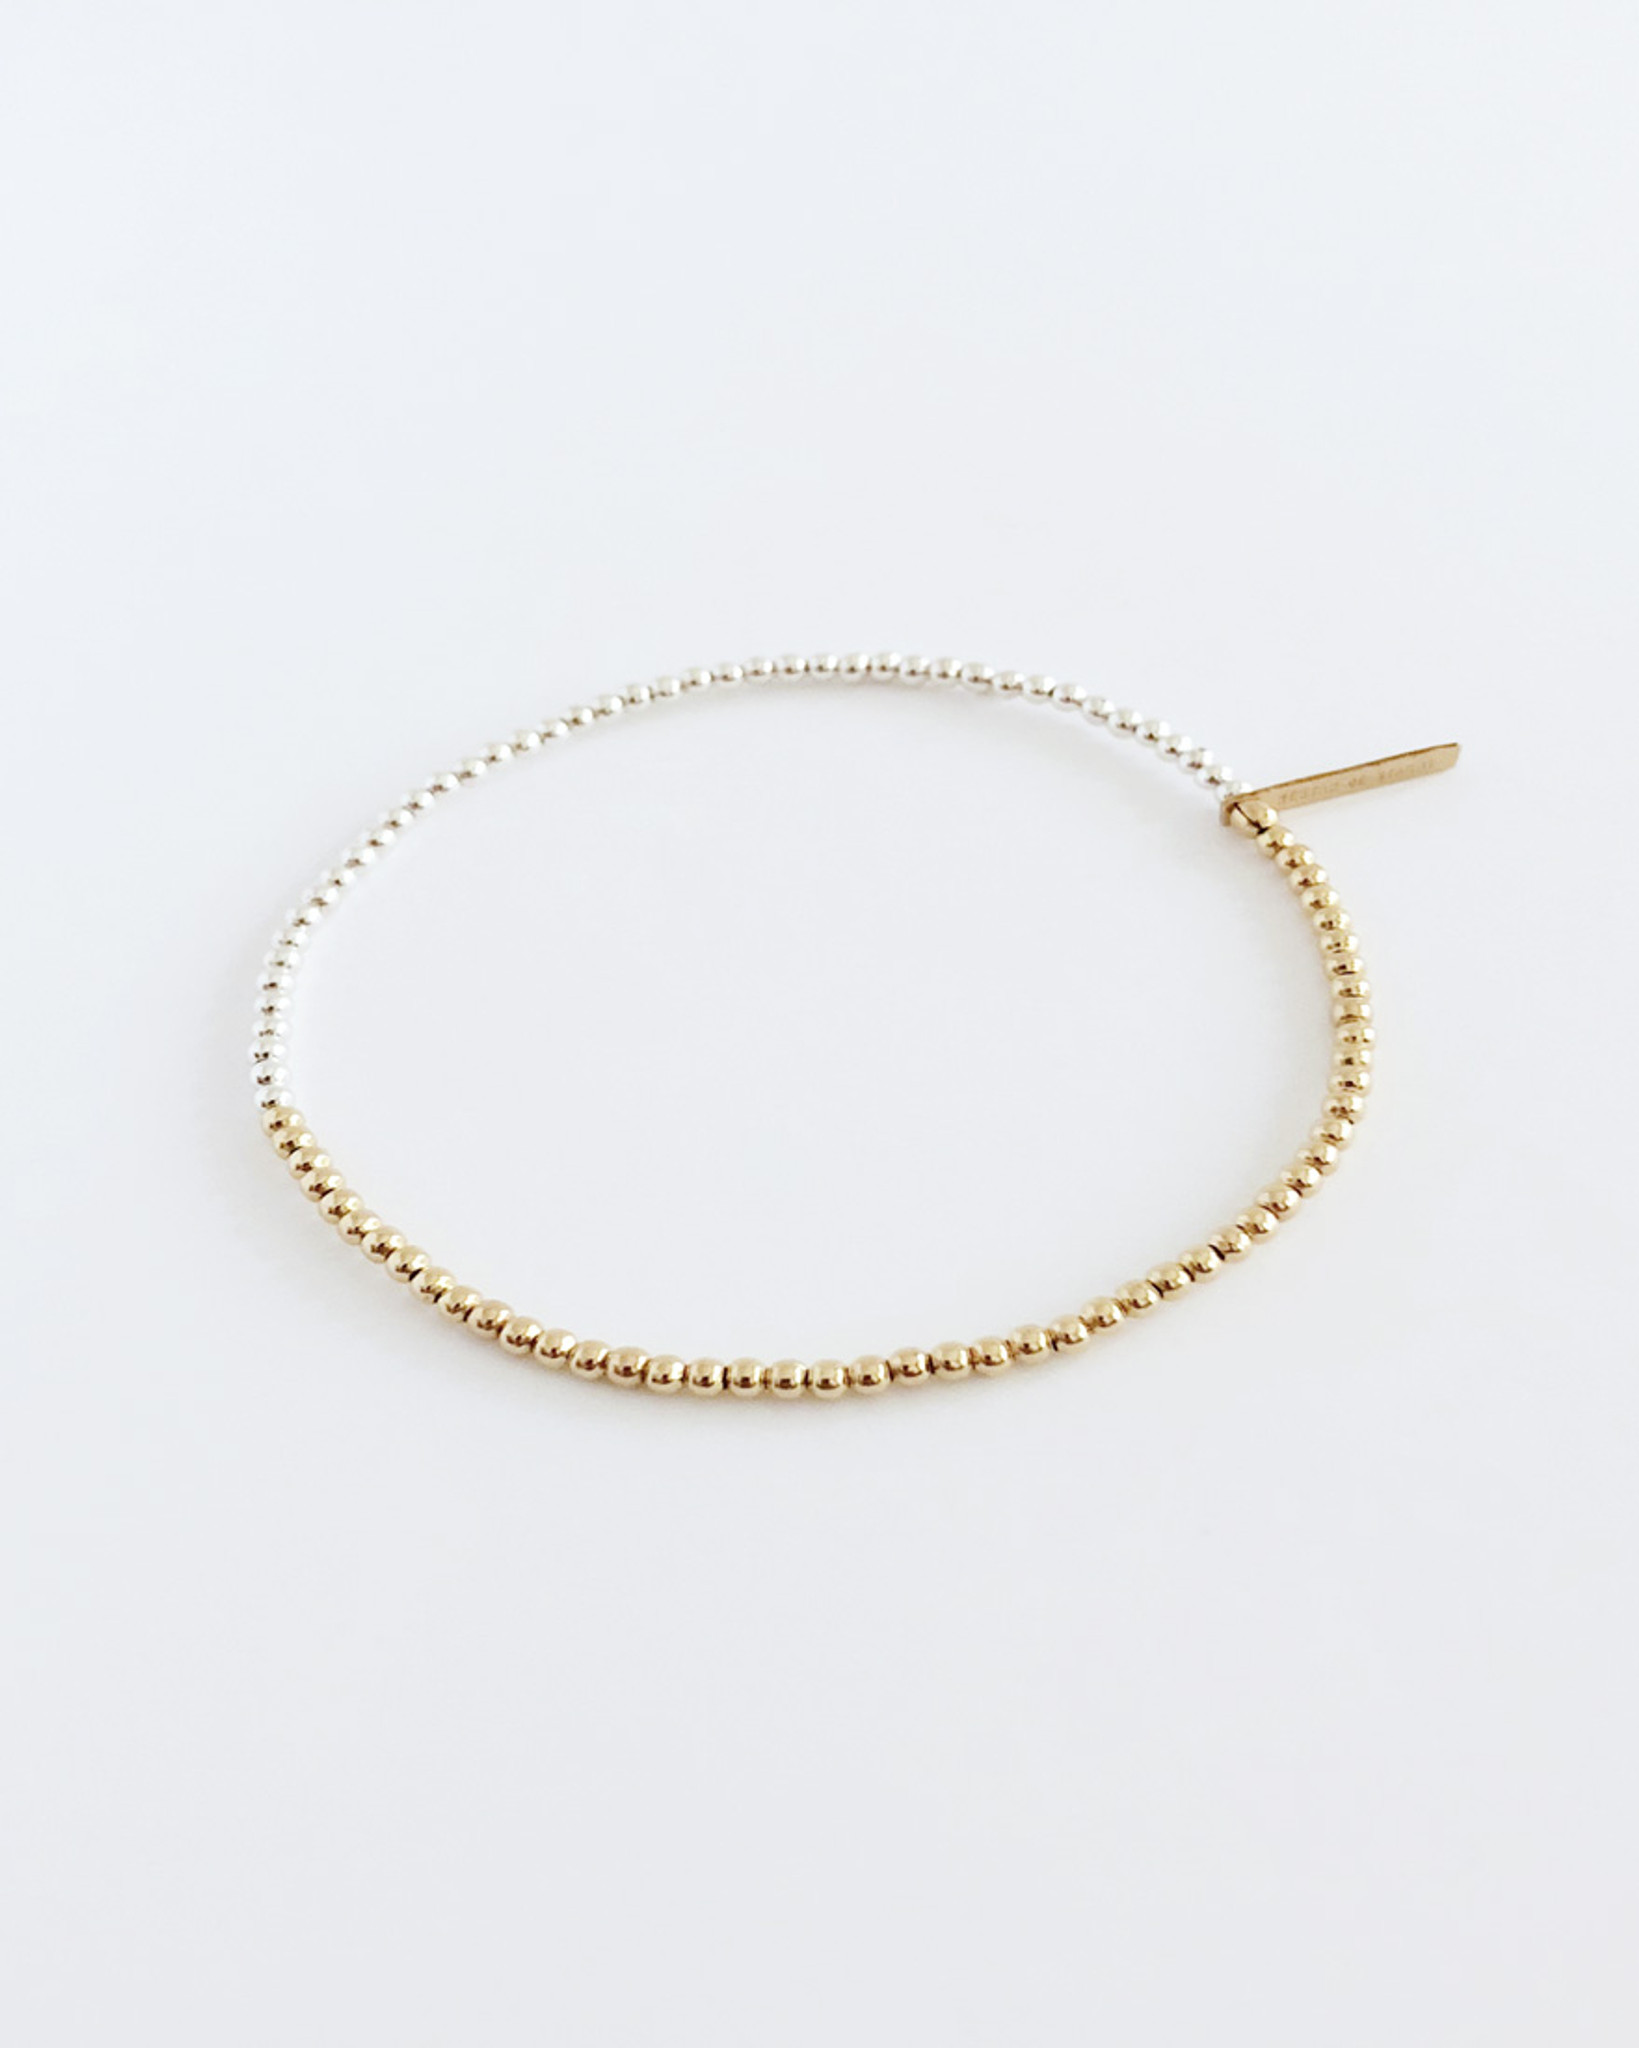 ca8aad01c01b6a In Side View of Jewelry Designer Nektar De Stagni's minimal stretch  friendship bracelet, featuring classic precious ...